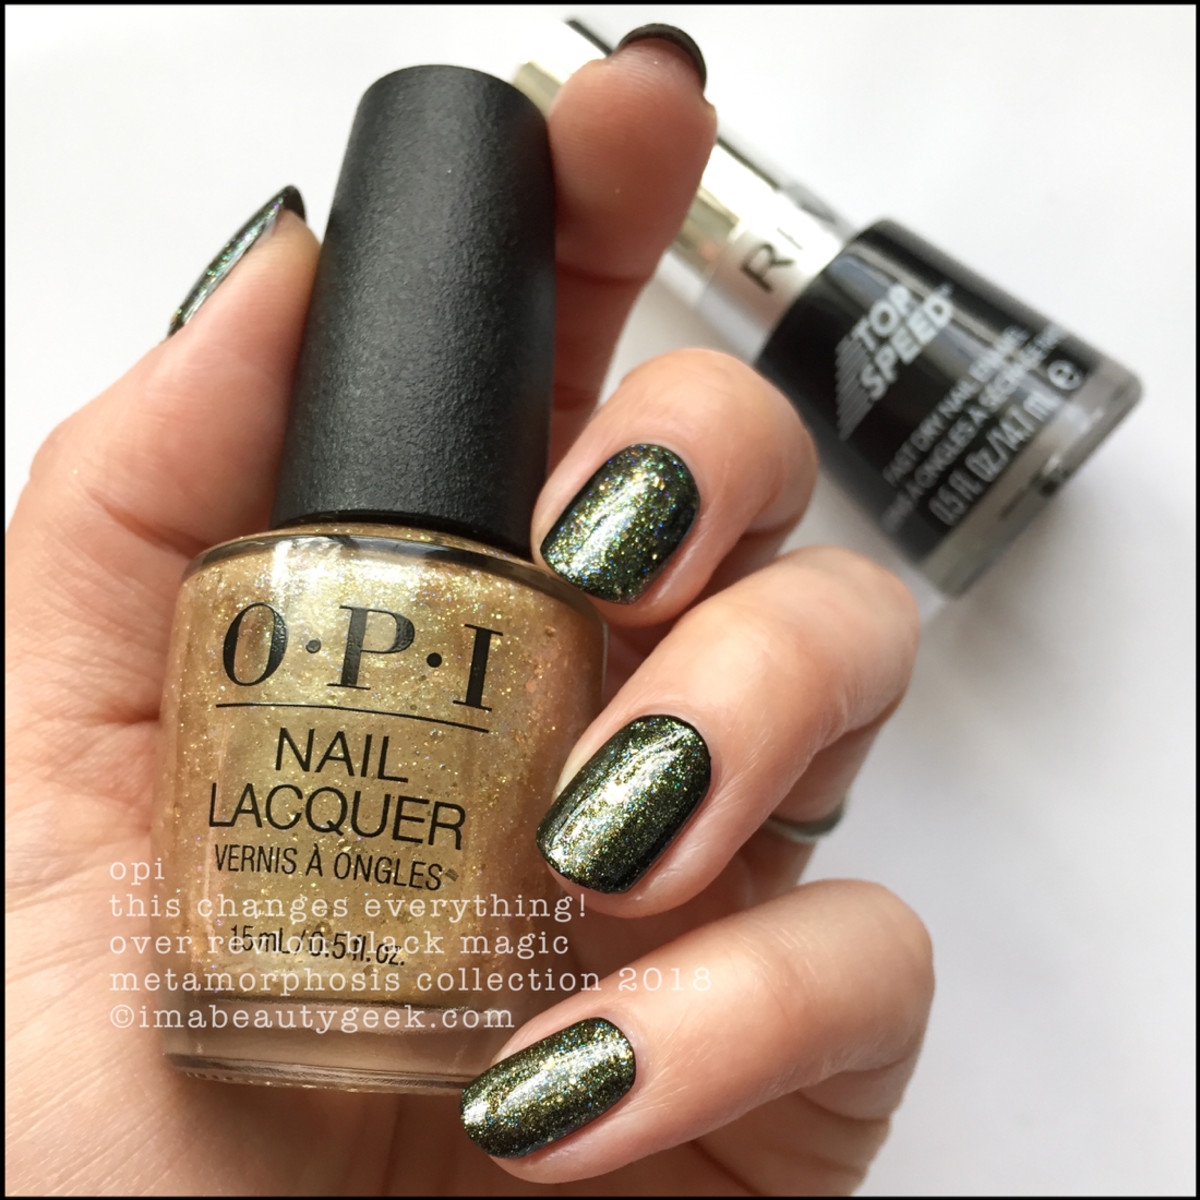 OPI Metamorphosis Collection - OPI This Changes Everything!